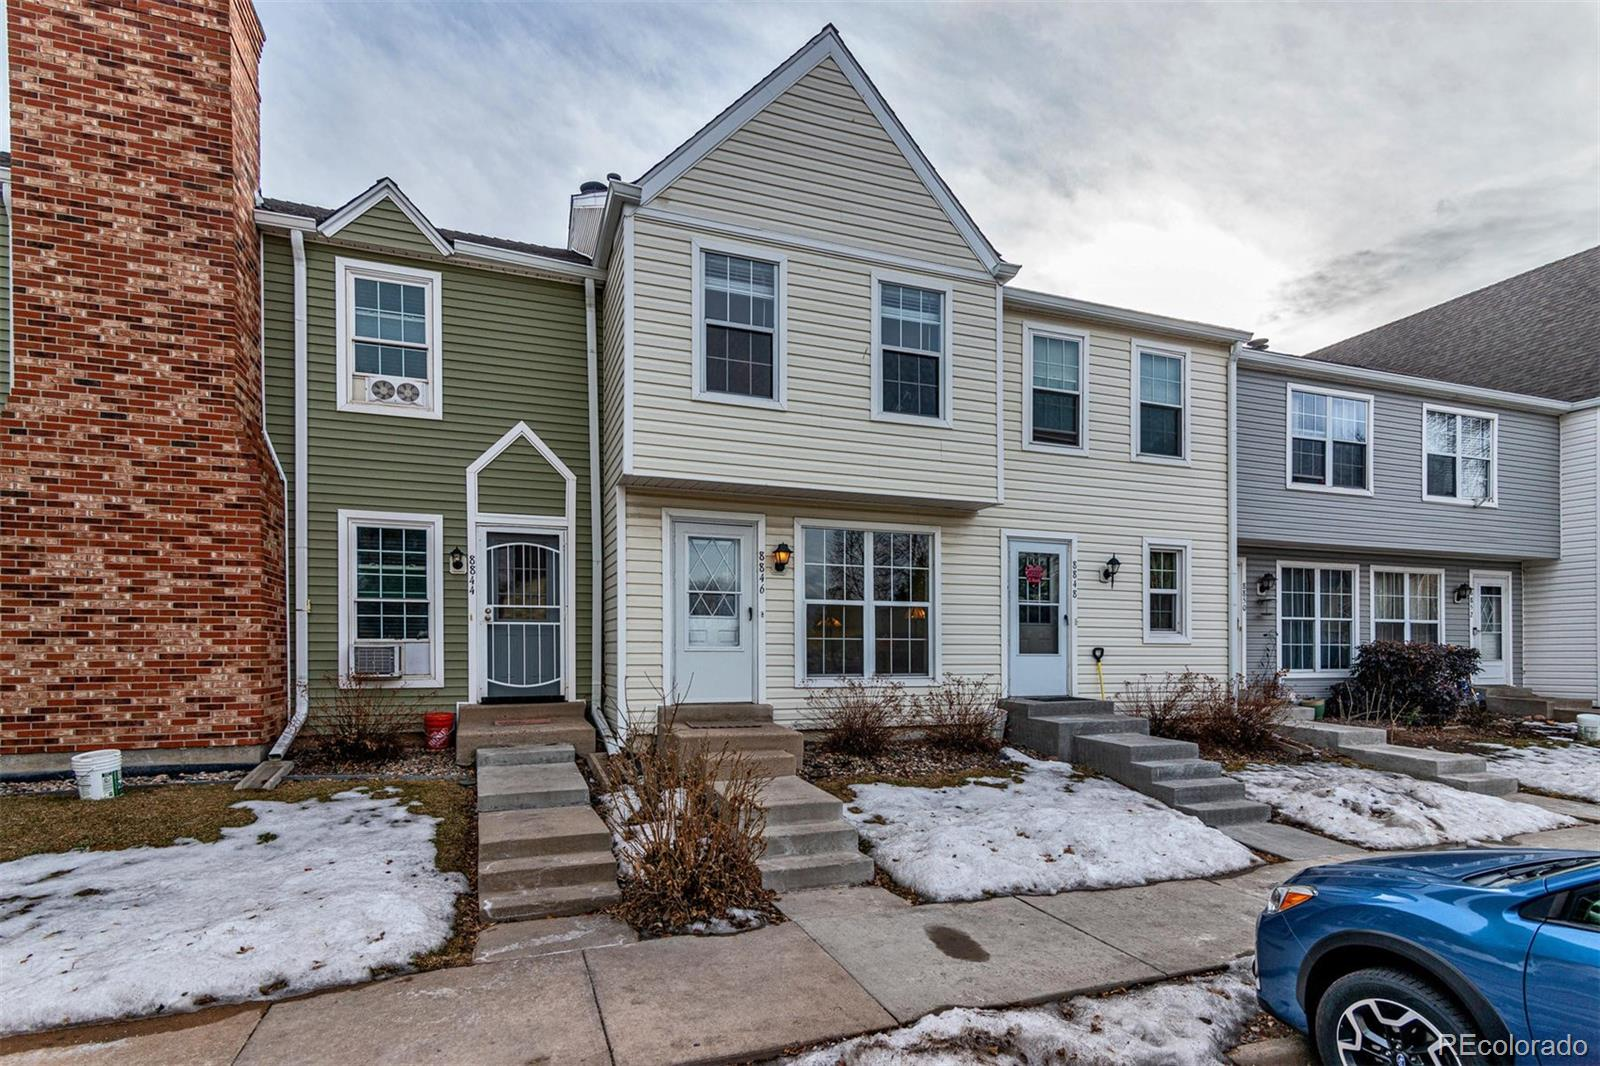 MLS# 6379353 - 27 - 8846 W Dartmouth Place, Lakewood, CO 80227